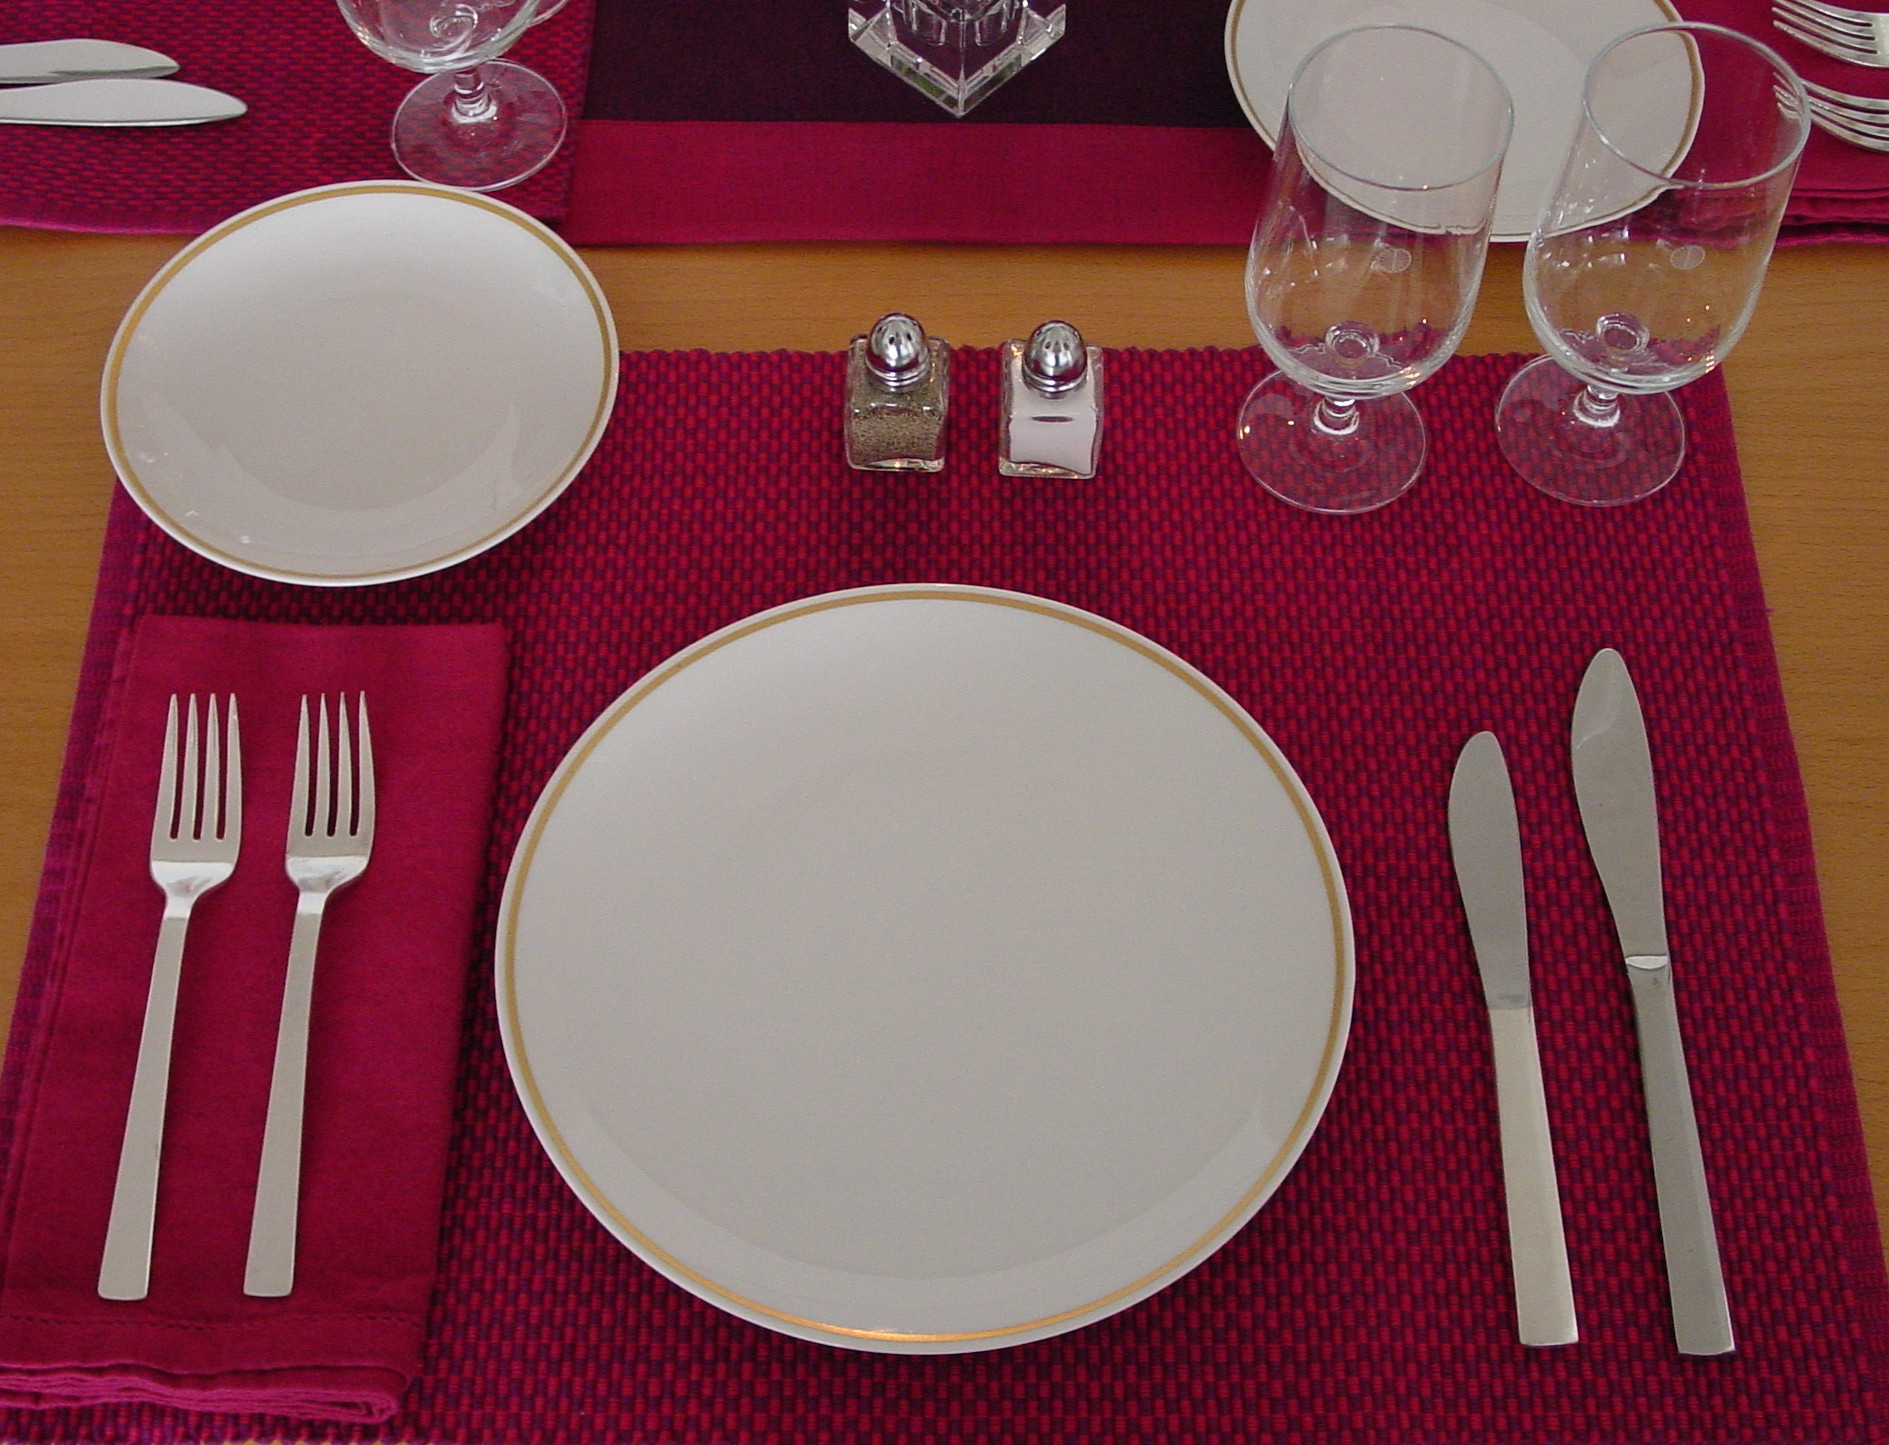 An individual place setting of the 1970s  Pan Am Gold Rim pattern is shown here.